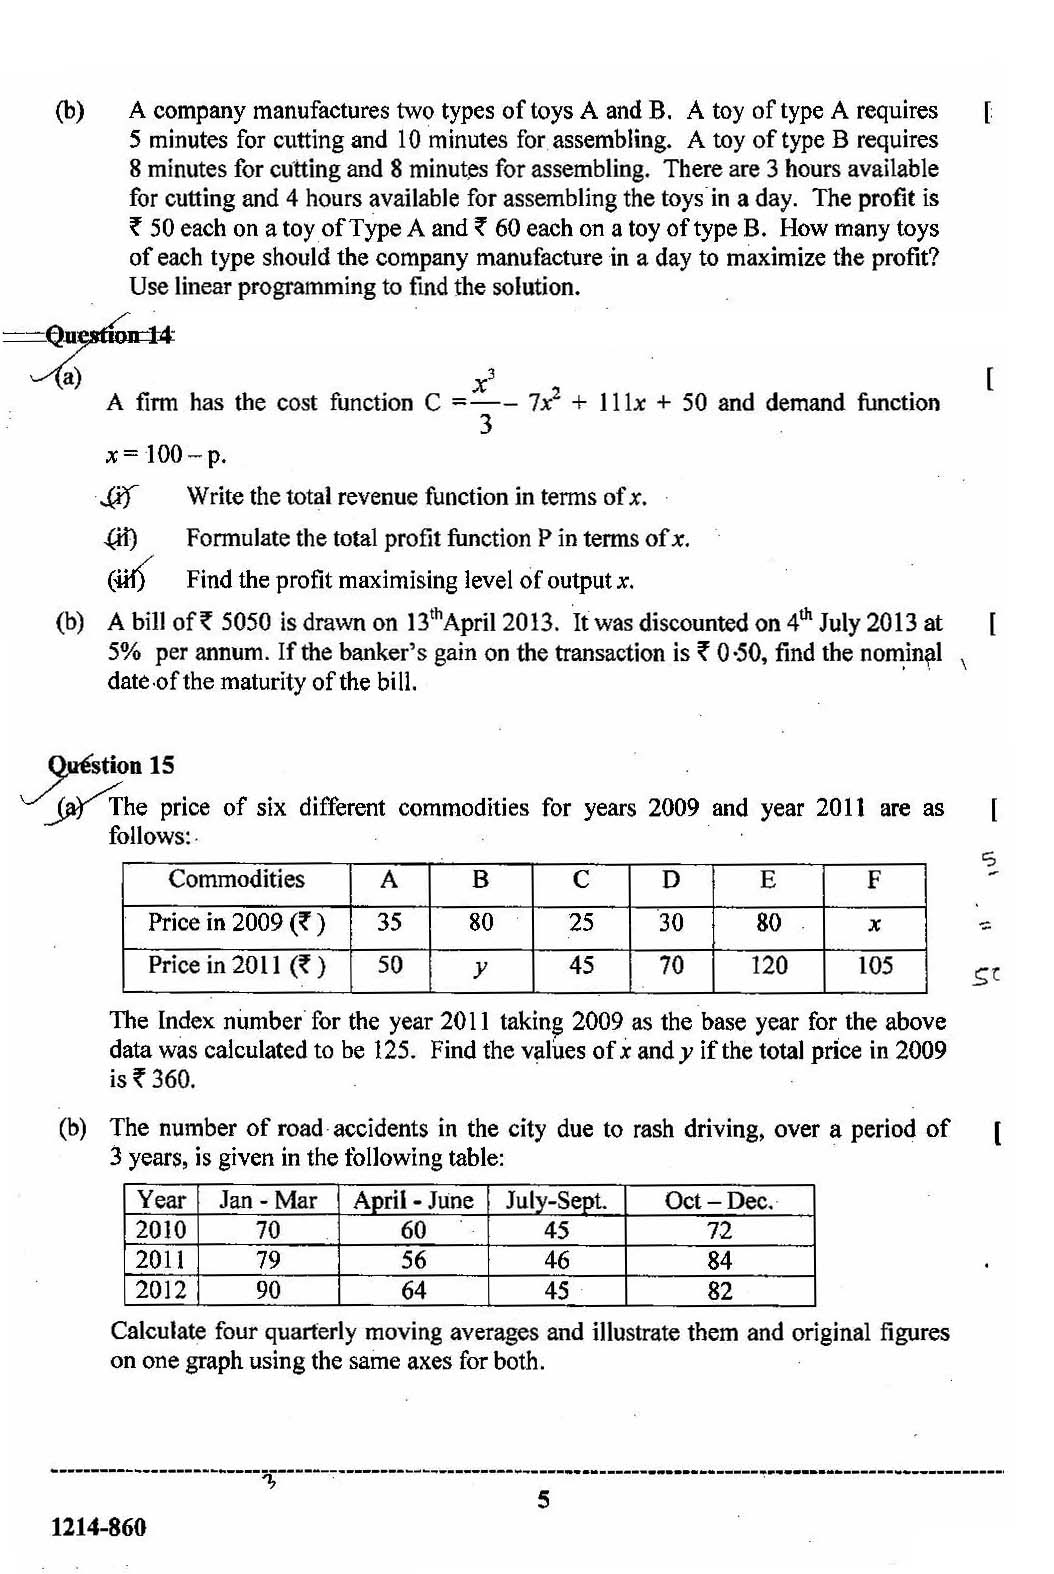 isc 2014 class 12th Mathematics question paper